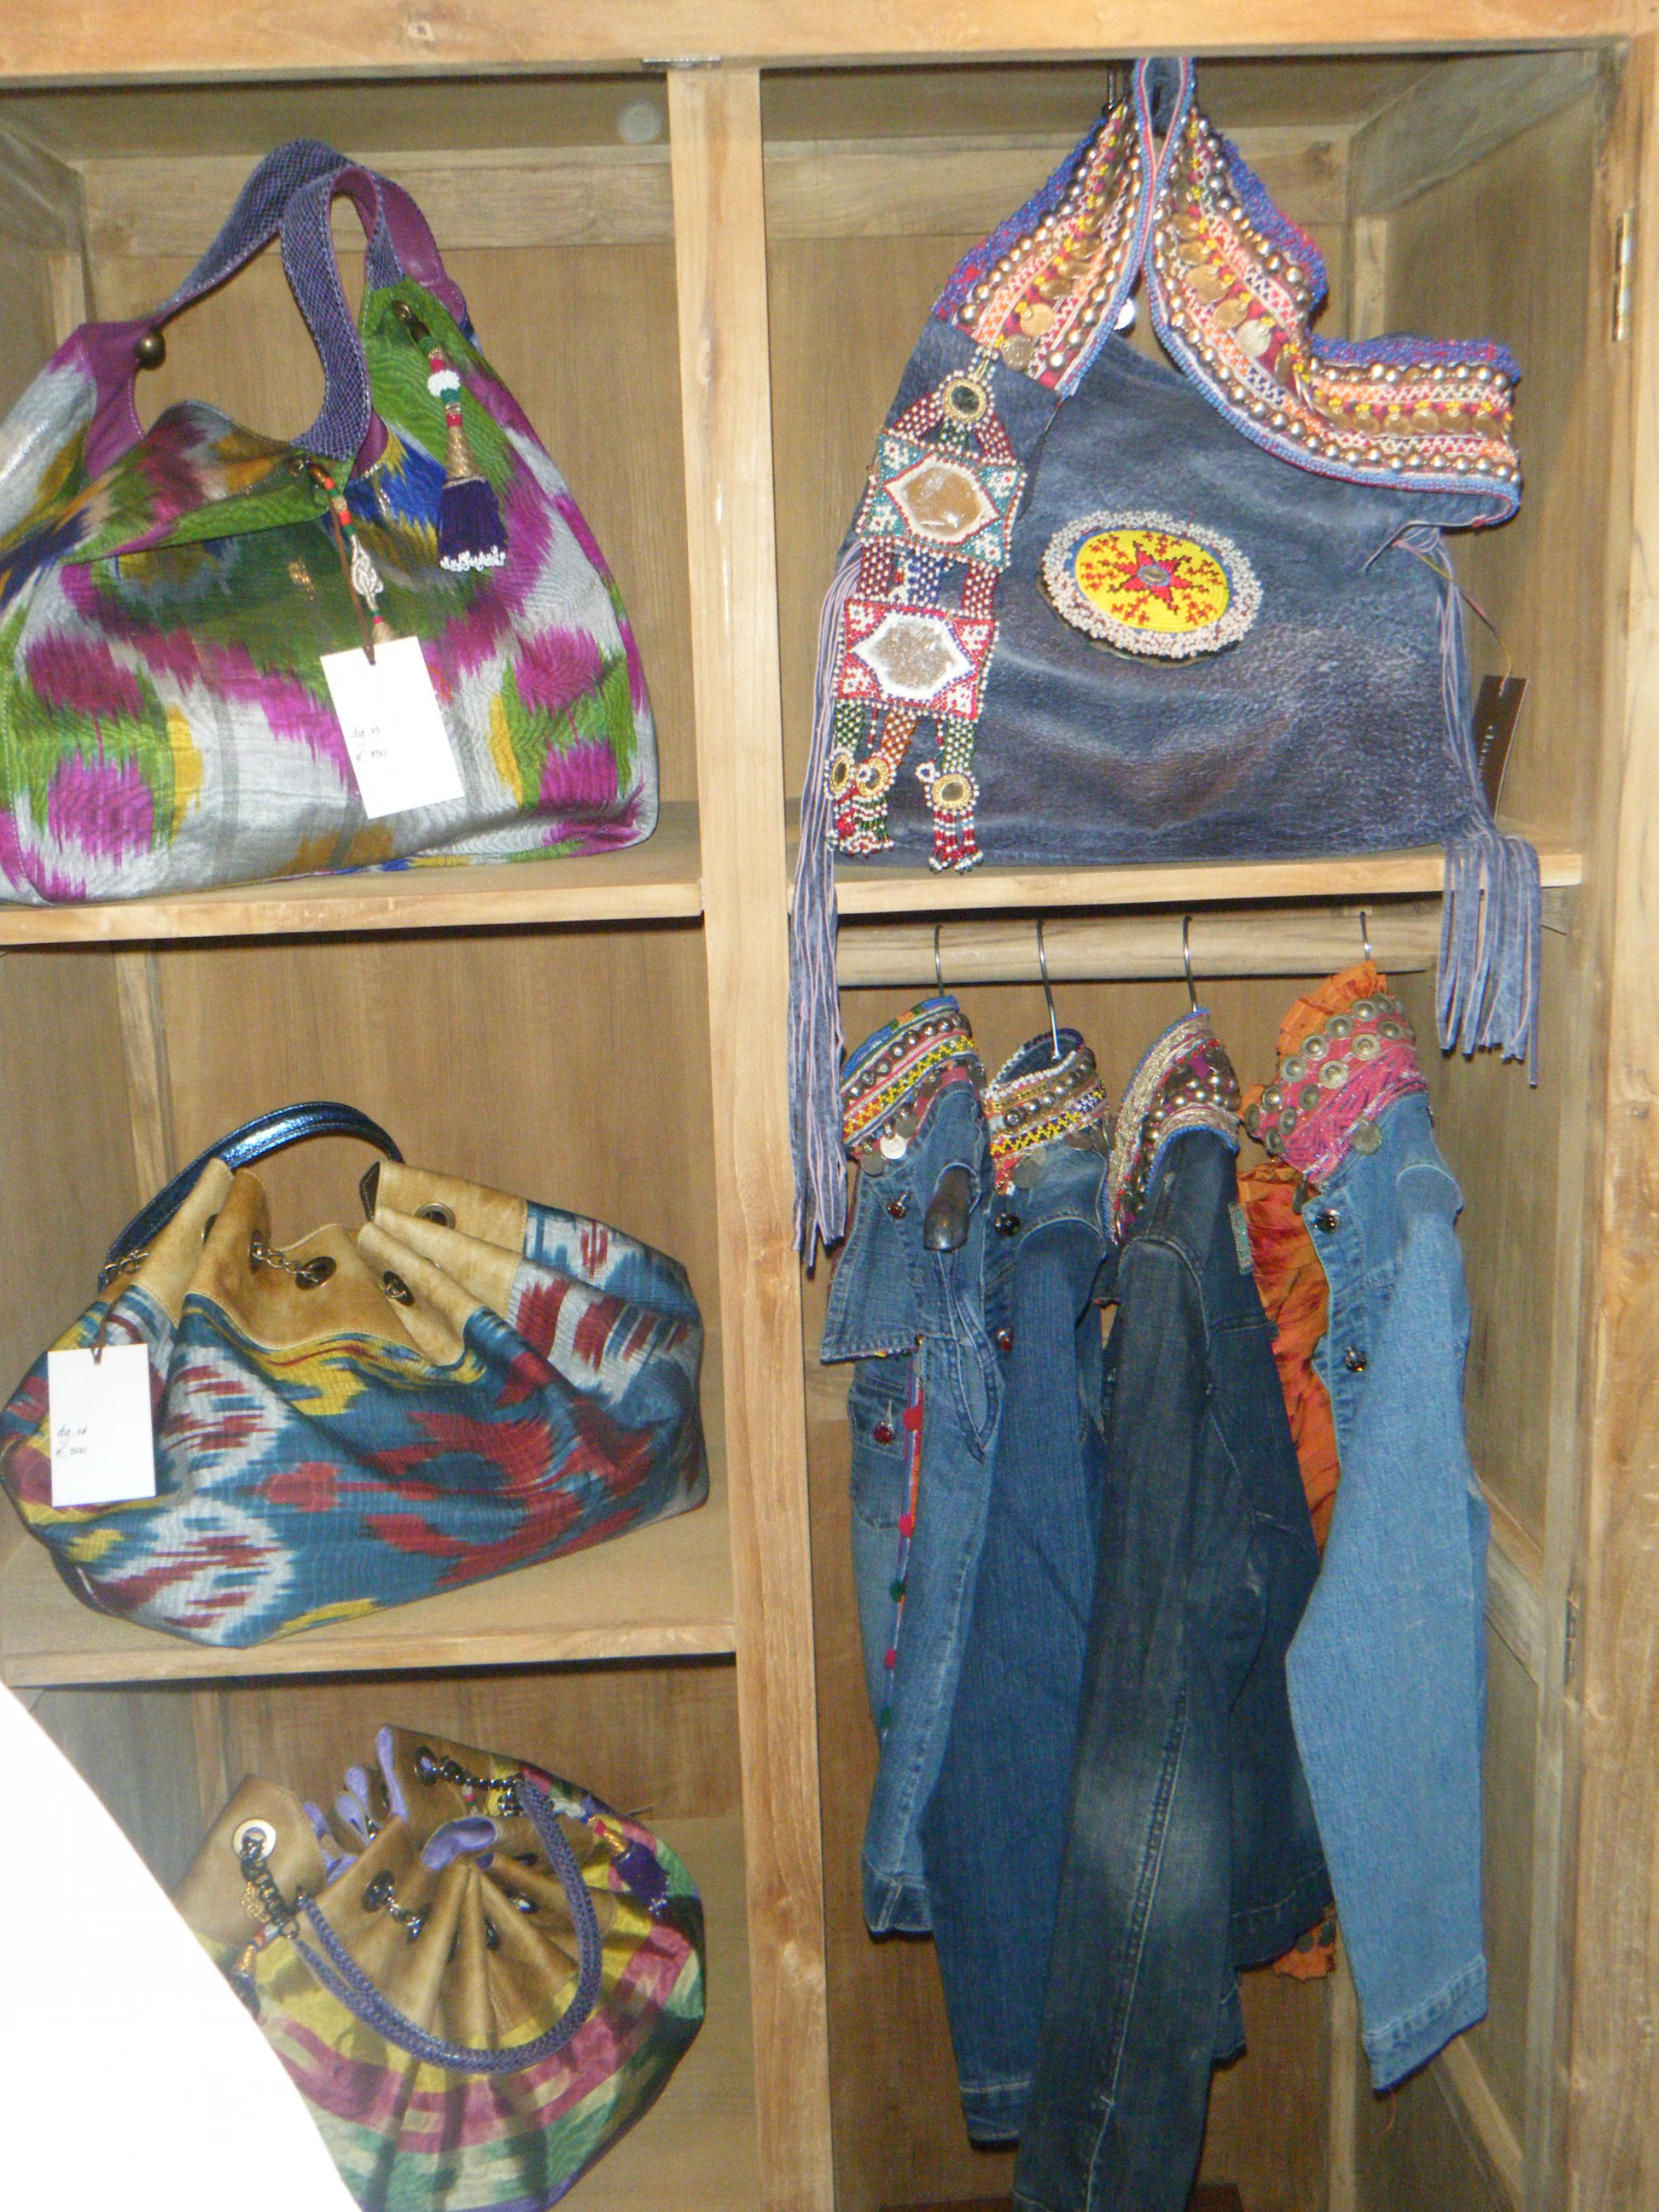 Dimitris Dassios Handbags and Jean Embelished Jackets